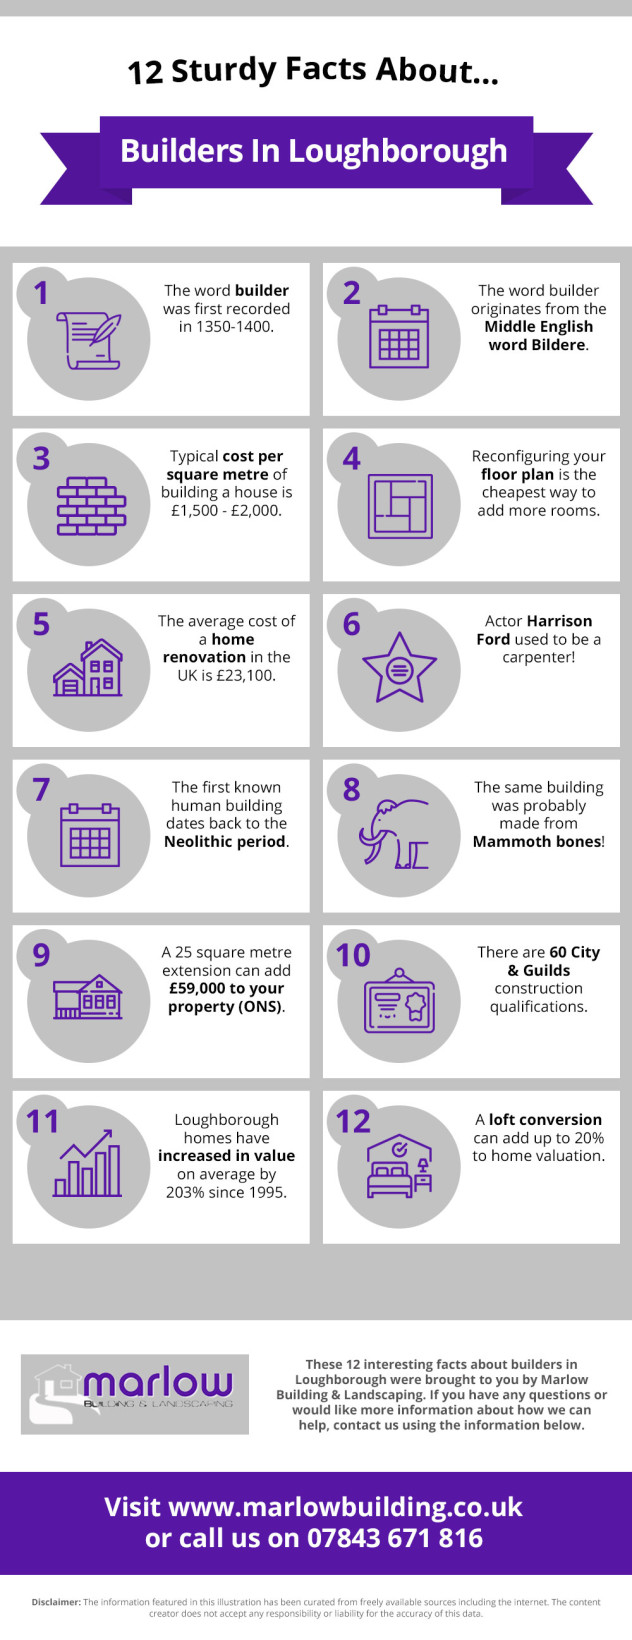 12 Sturdy Facts About Builders In Loughborough